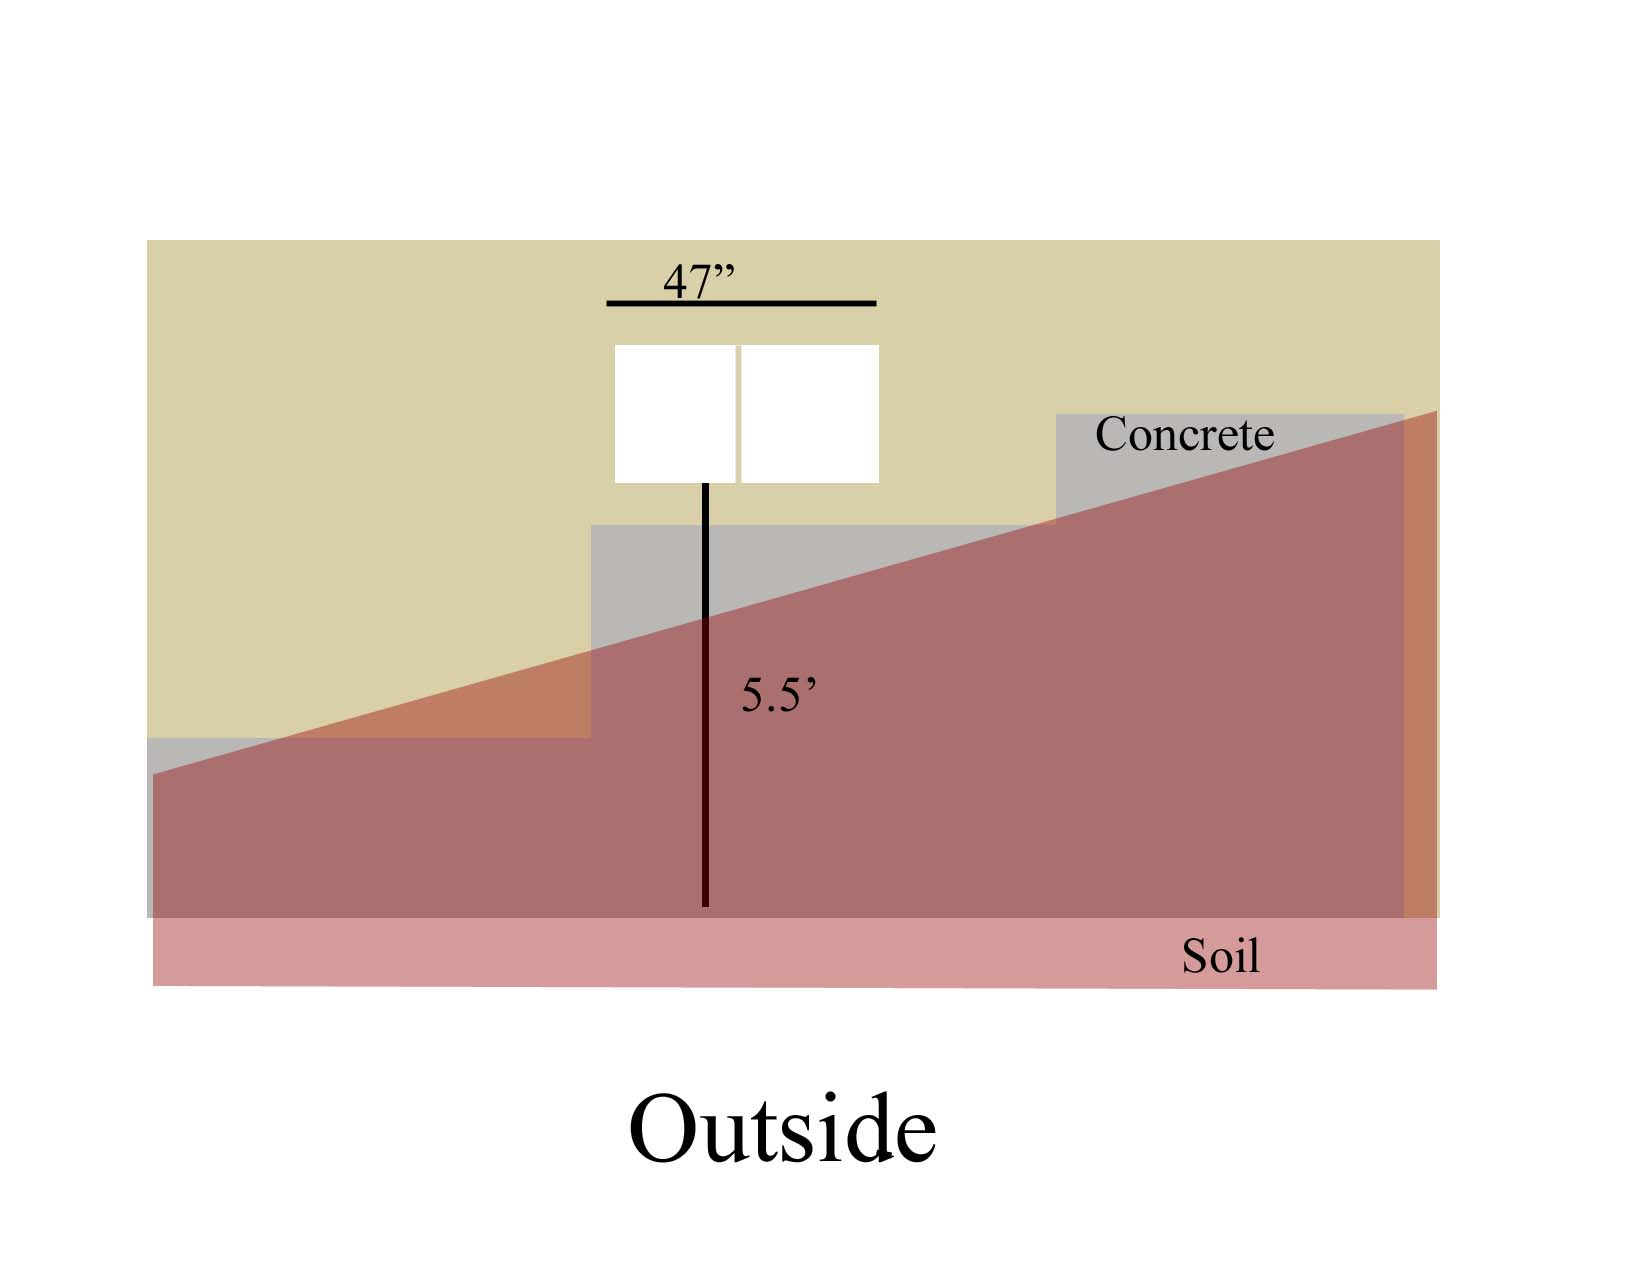 Cutting concrete foundation for door, is it safe?-outside.jpg